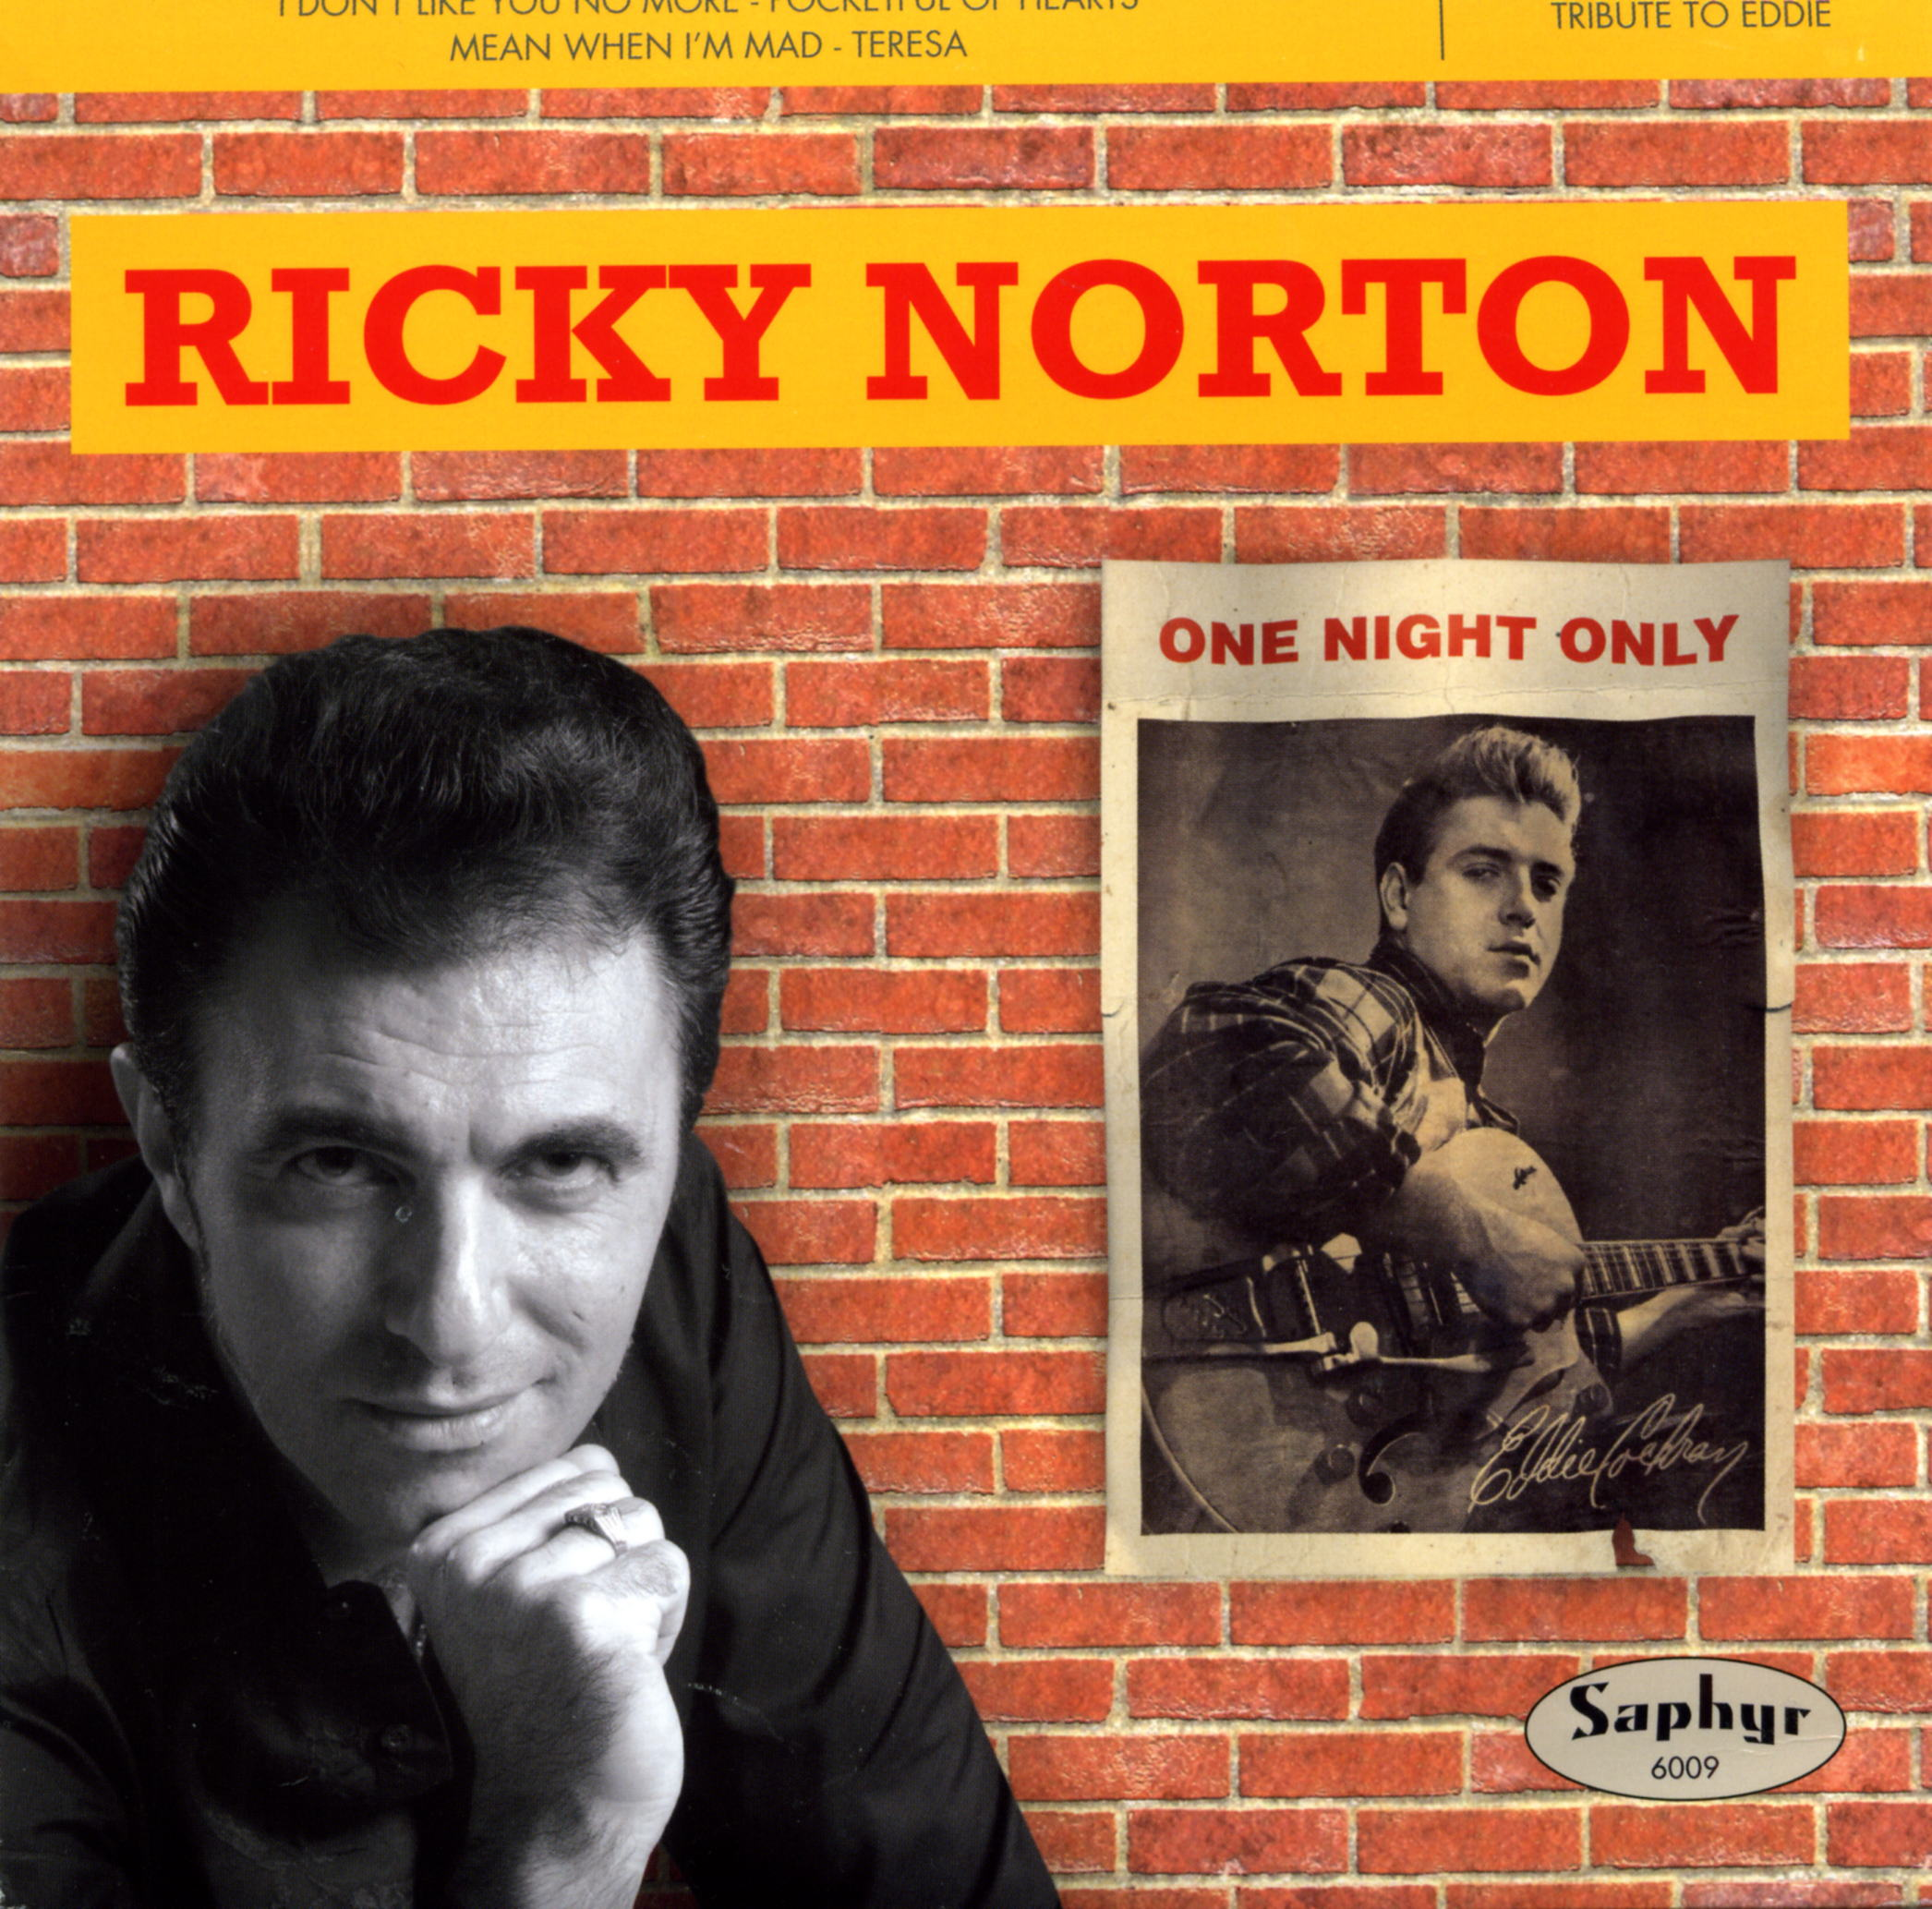 50 RICKY NORTON TRIBUTE TO EDDIE 2010